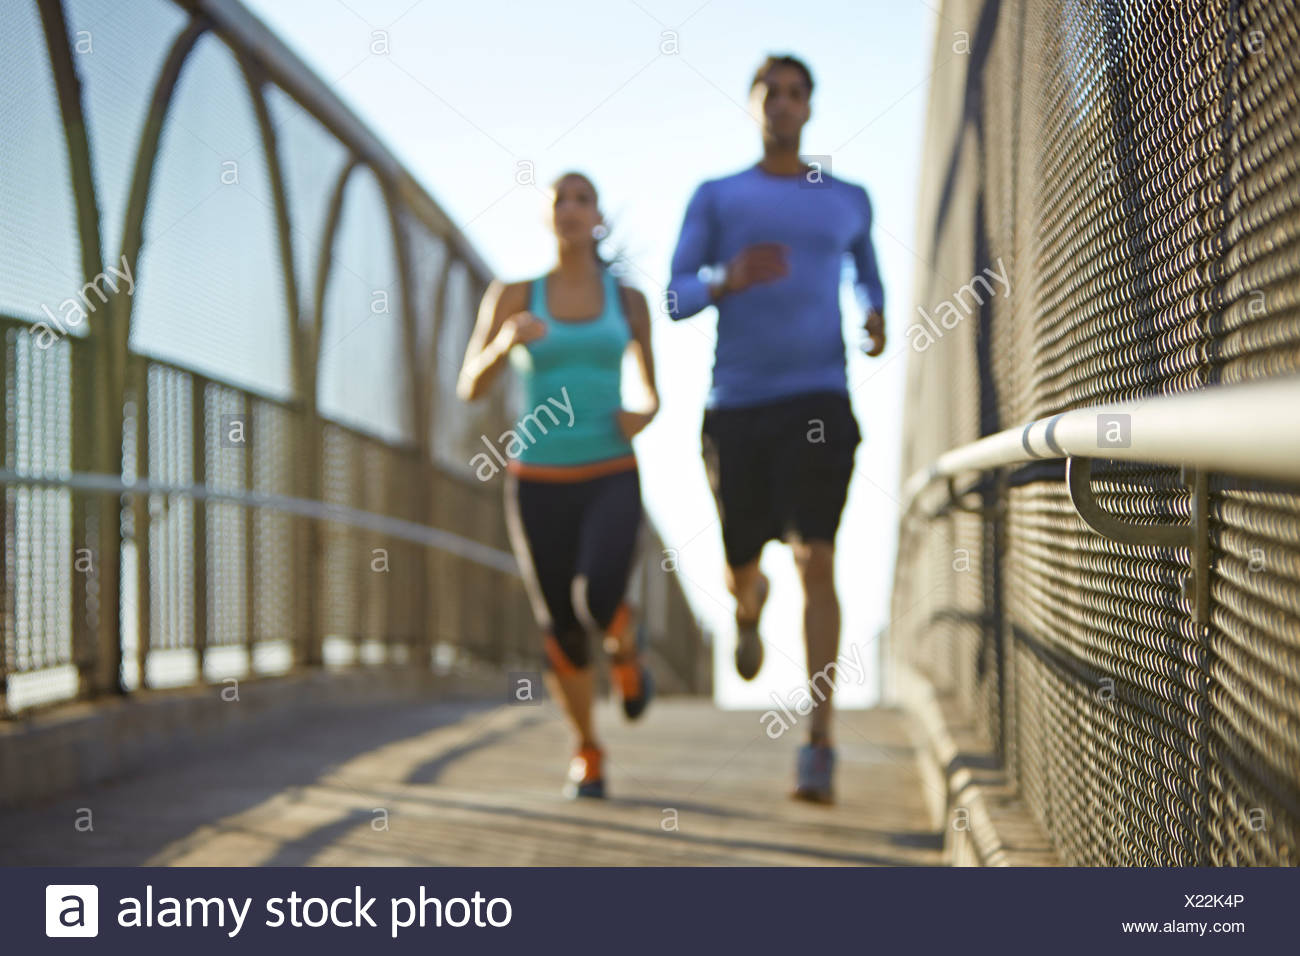 Man and woman running over bridge - Stock Image